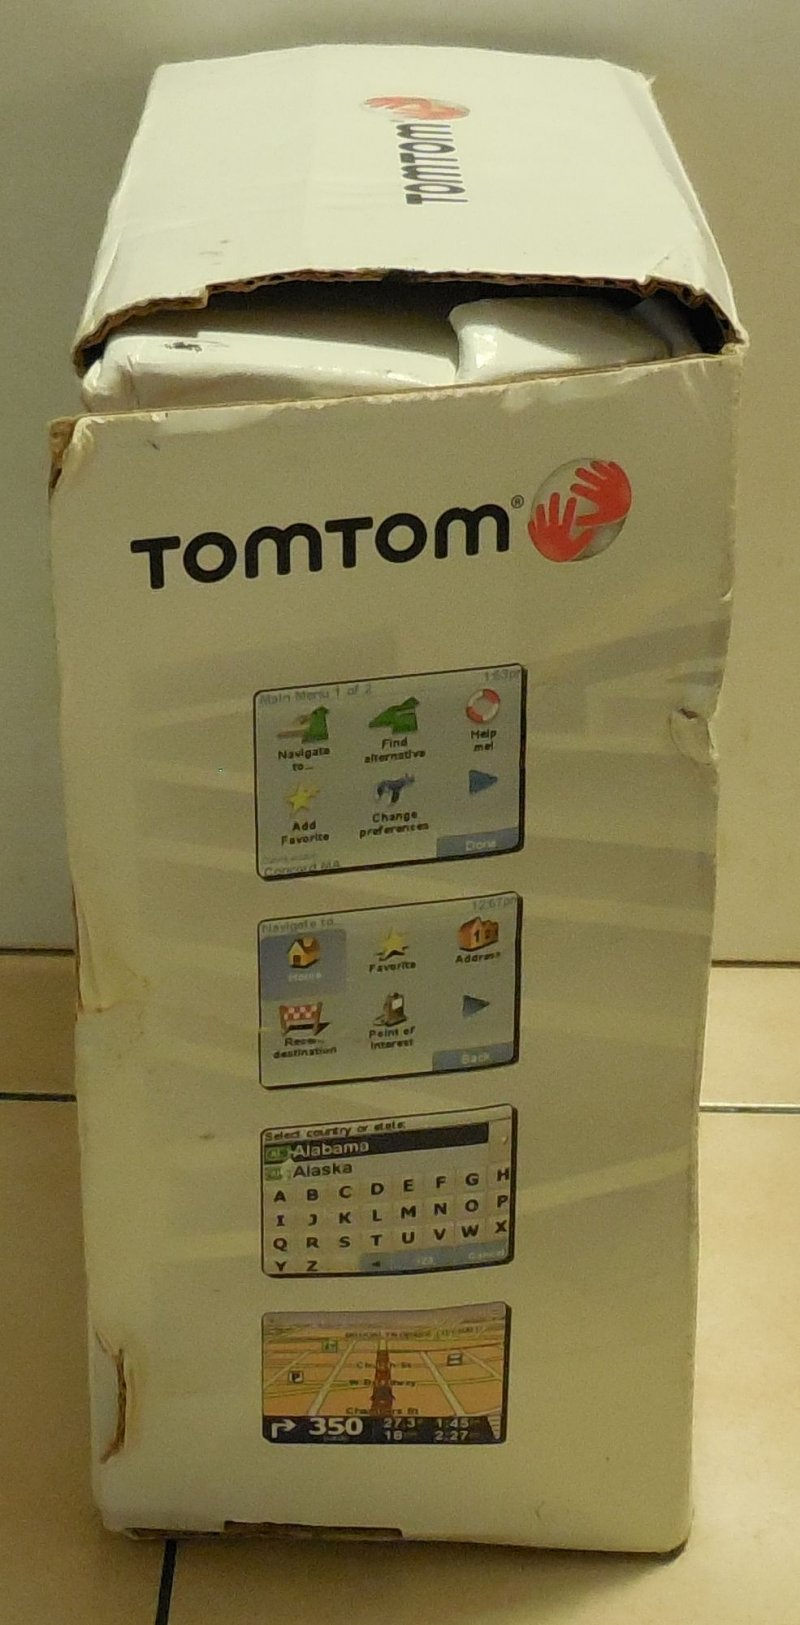 Image 3 of TomTom XL 310 US & Canada  Navigation System N14644